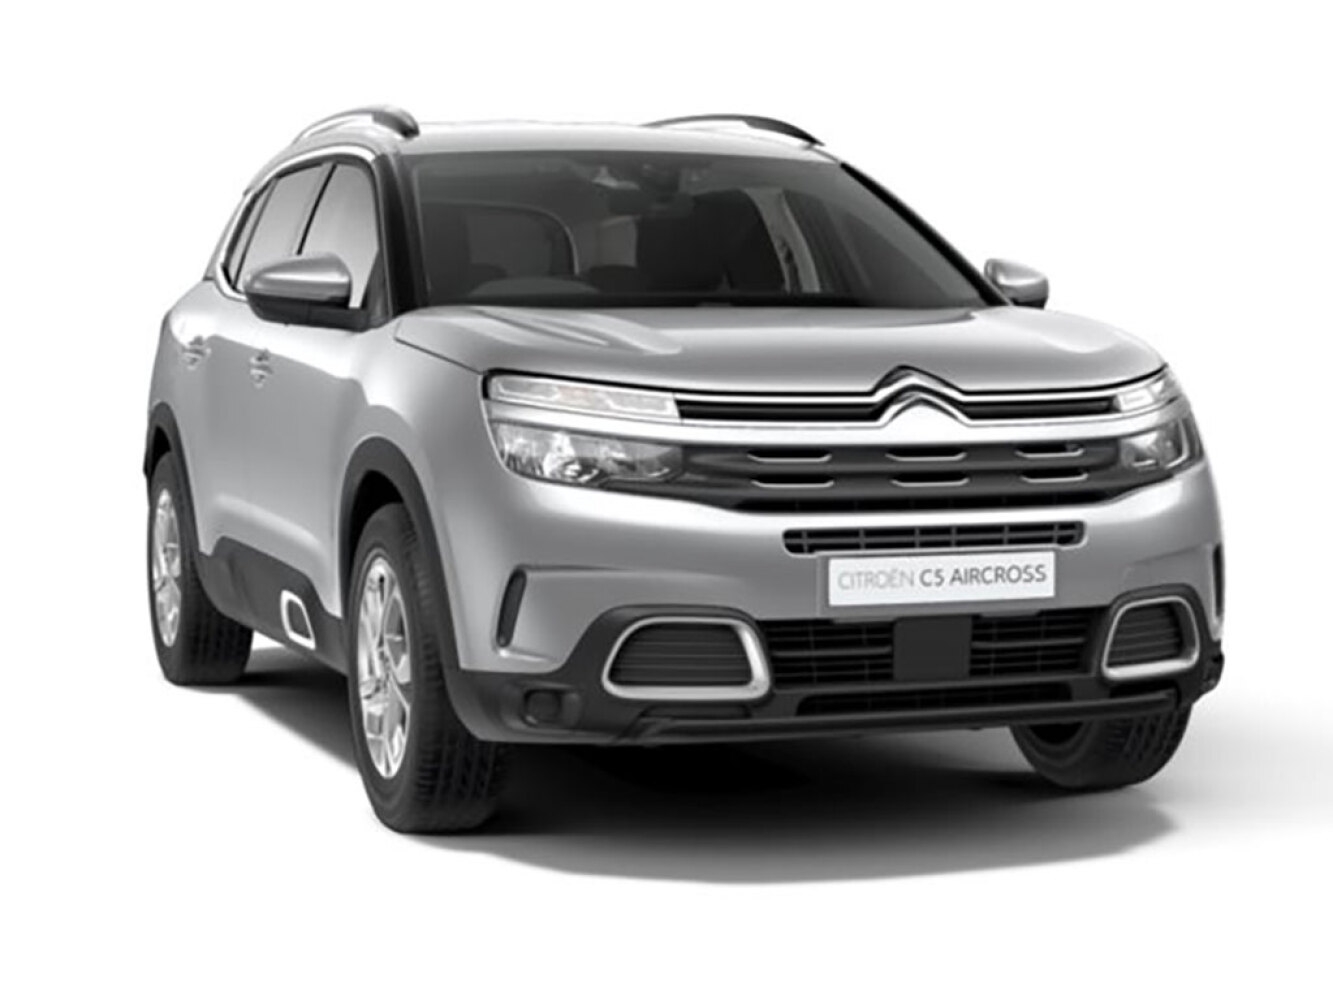 new citroen c5 aircross 1 2 puretech 130 feel 5dr petrol hatchback for sale bristol street. Black Bedroom Furniture Sets. Home Design Ideas